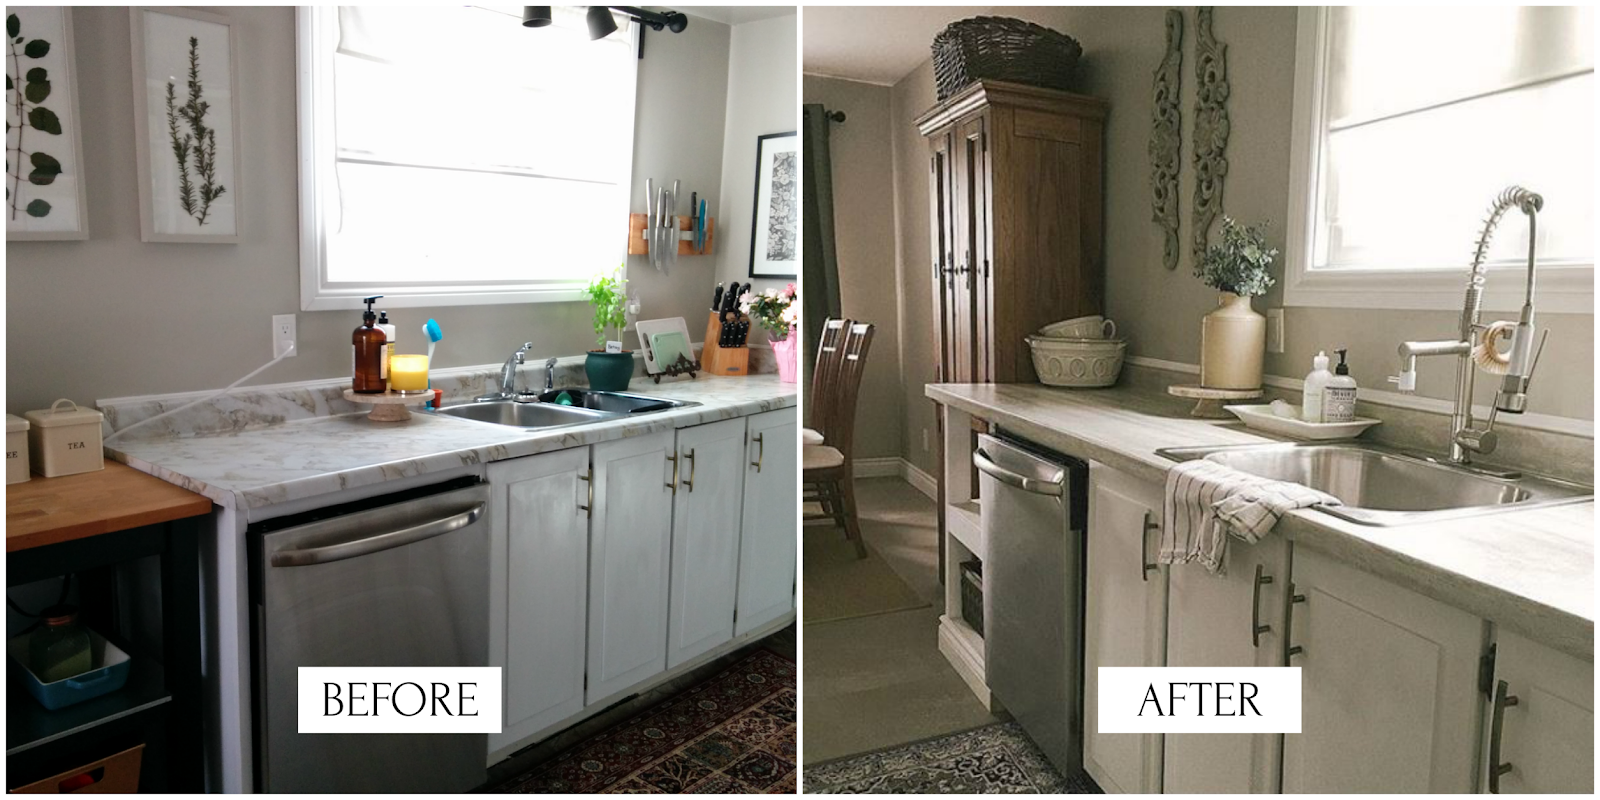 JULIA RAE KITCHEN BEFORE AND AFTER.png